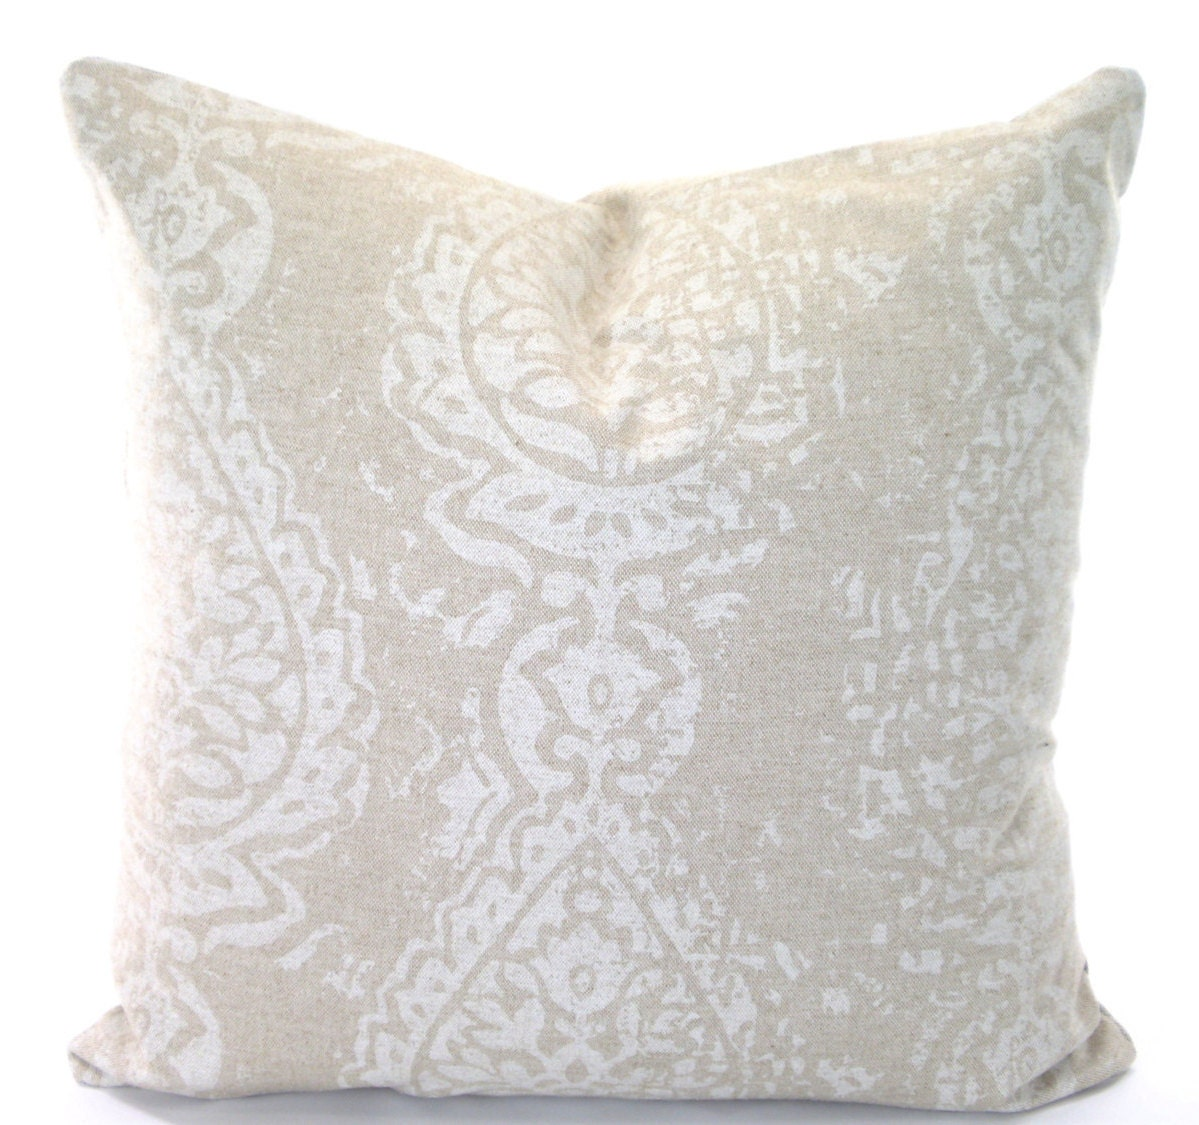 Throw Pillow White : Tan Off White Decorative Throw Pillow by PillowCushionCovers